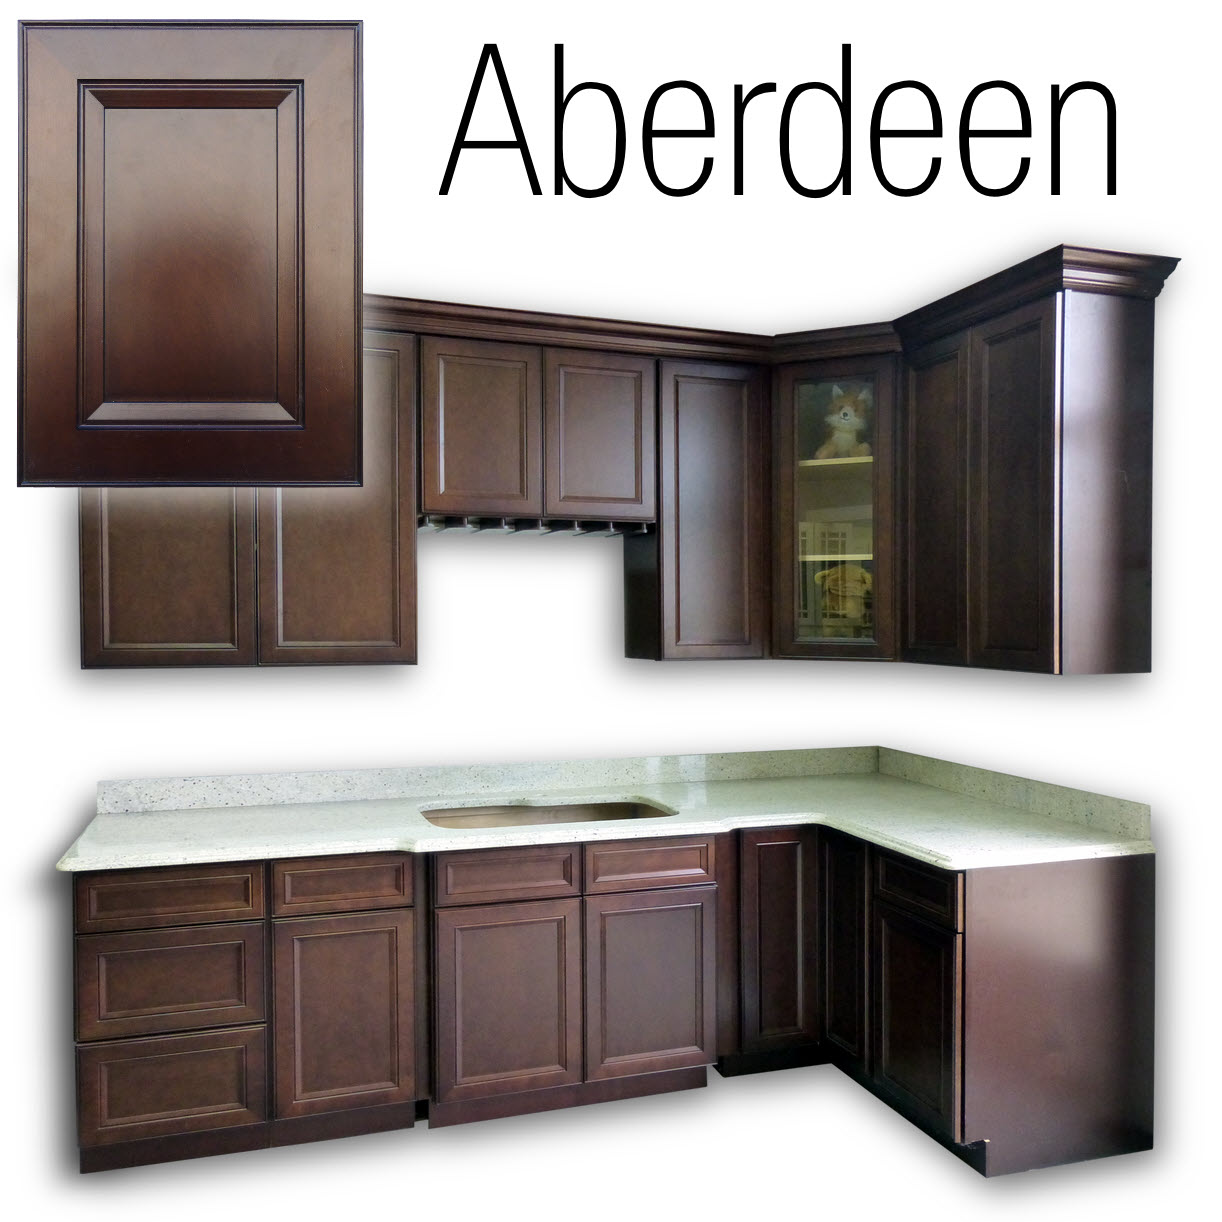 Aberdeen. A Best Seller For 2017, IN STOCK Now! Value, Quality And Full  Selection!